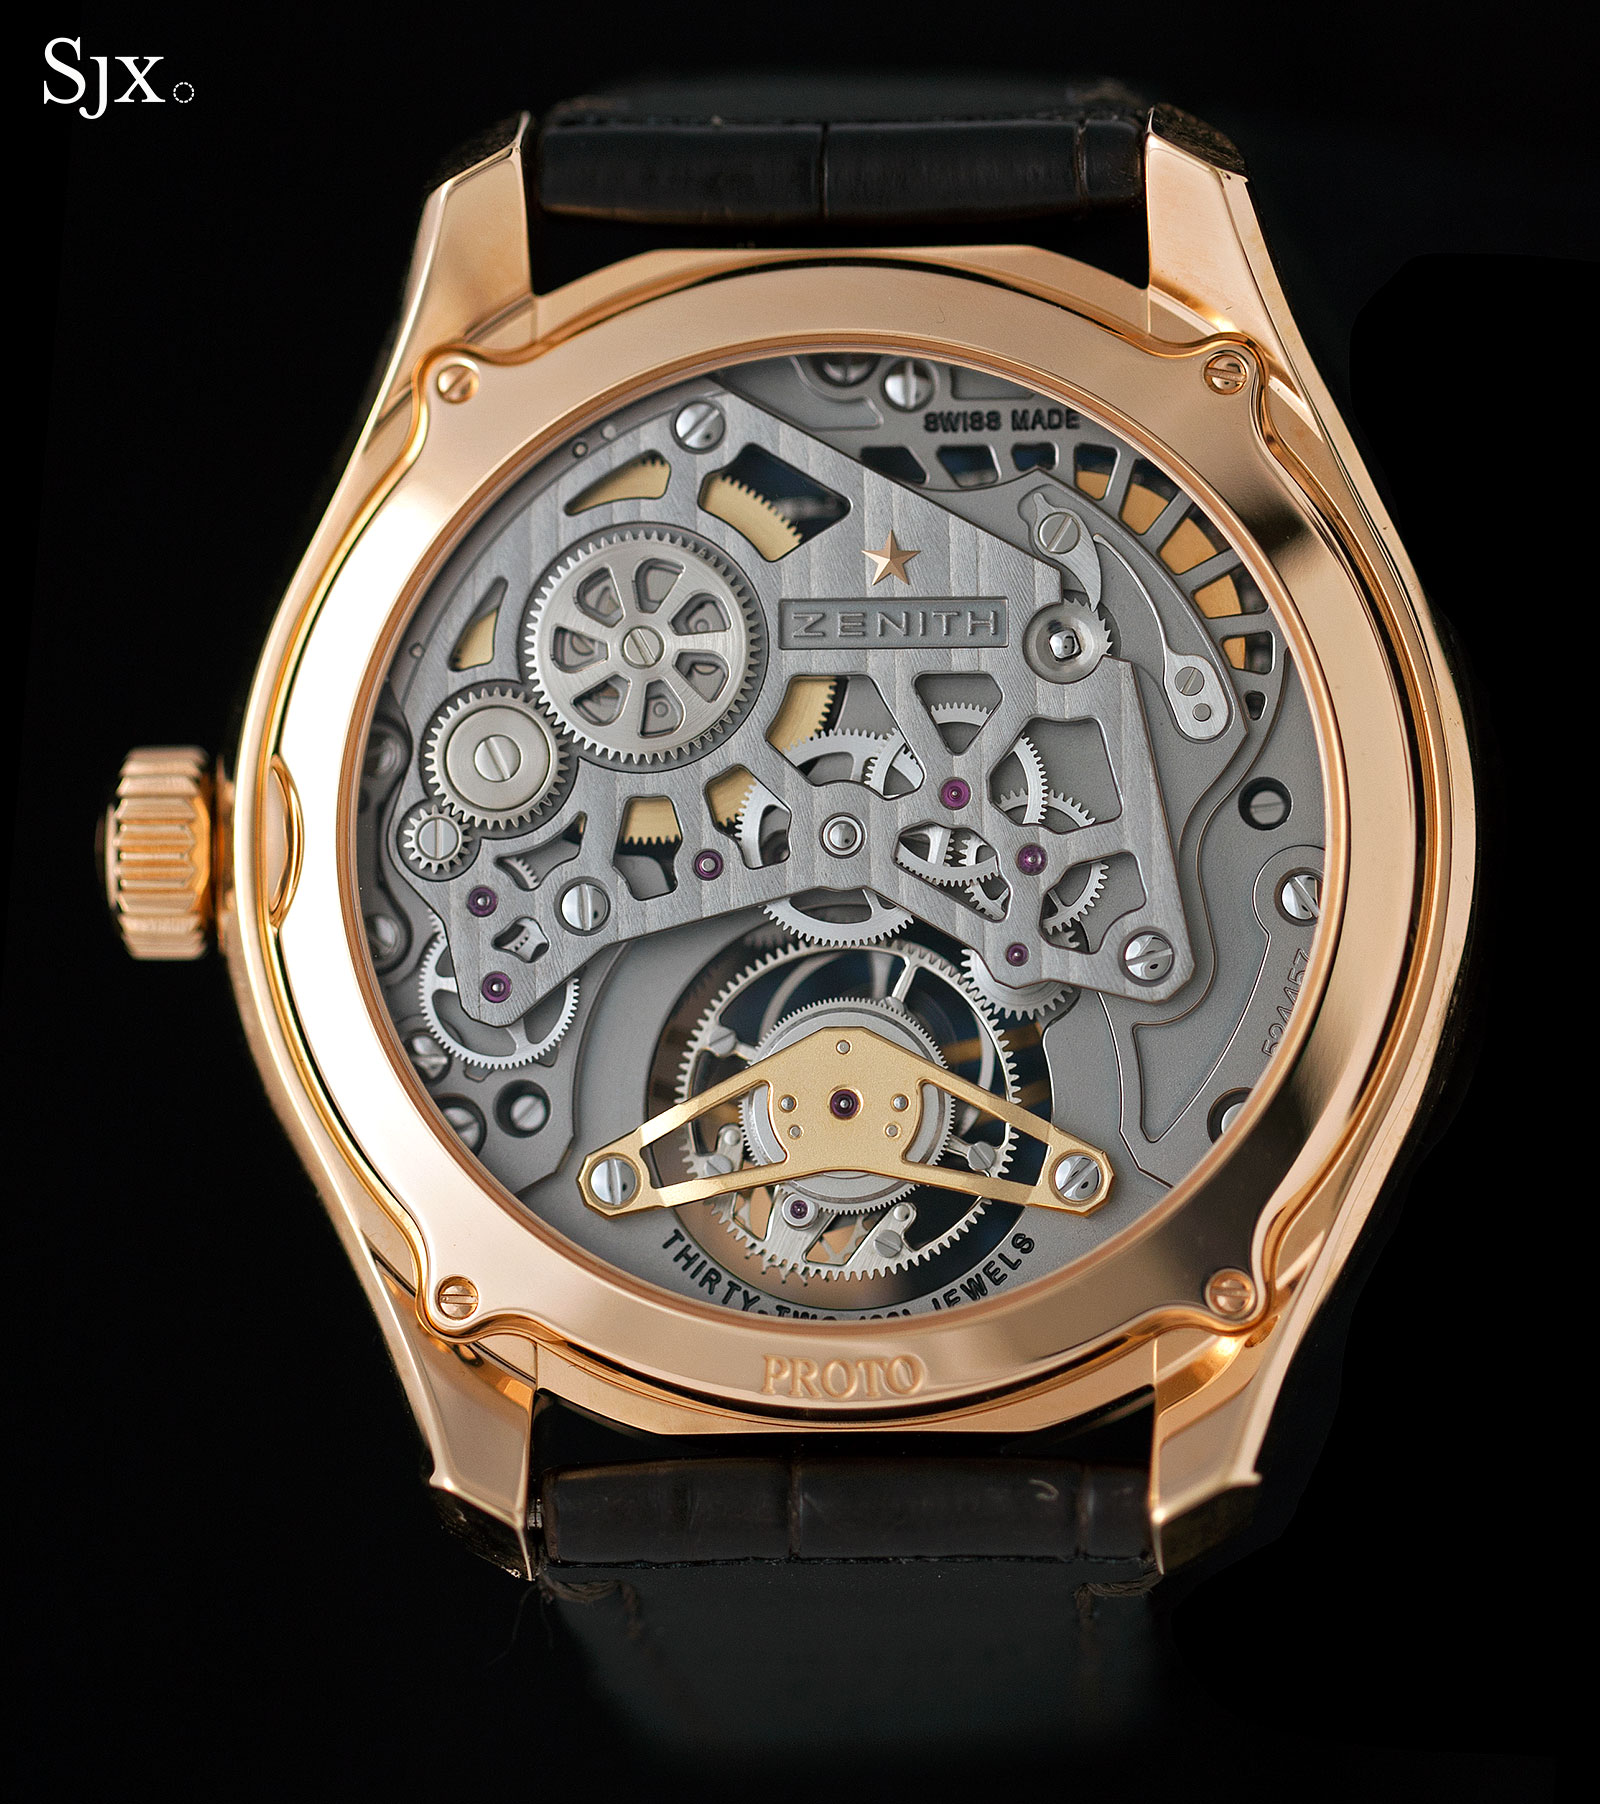 Zenith Academy Georges Favre-Jacot Tourbillon rose gold 6